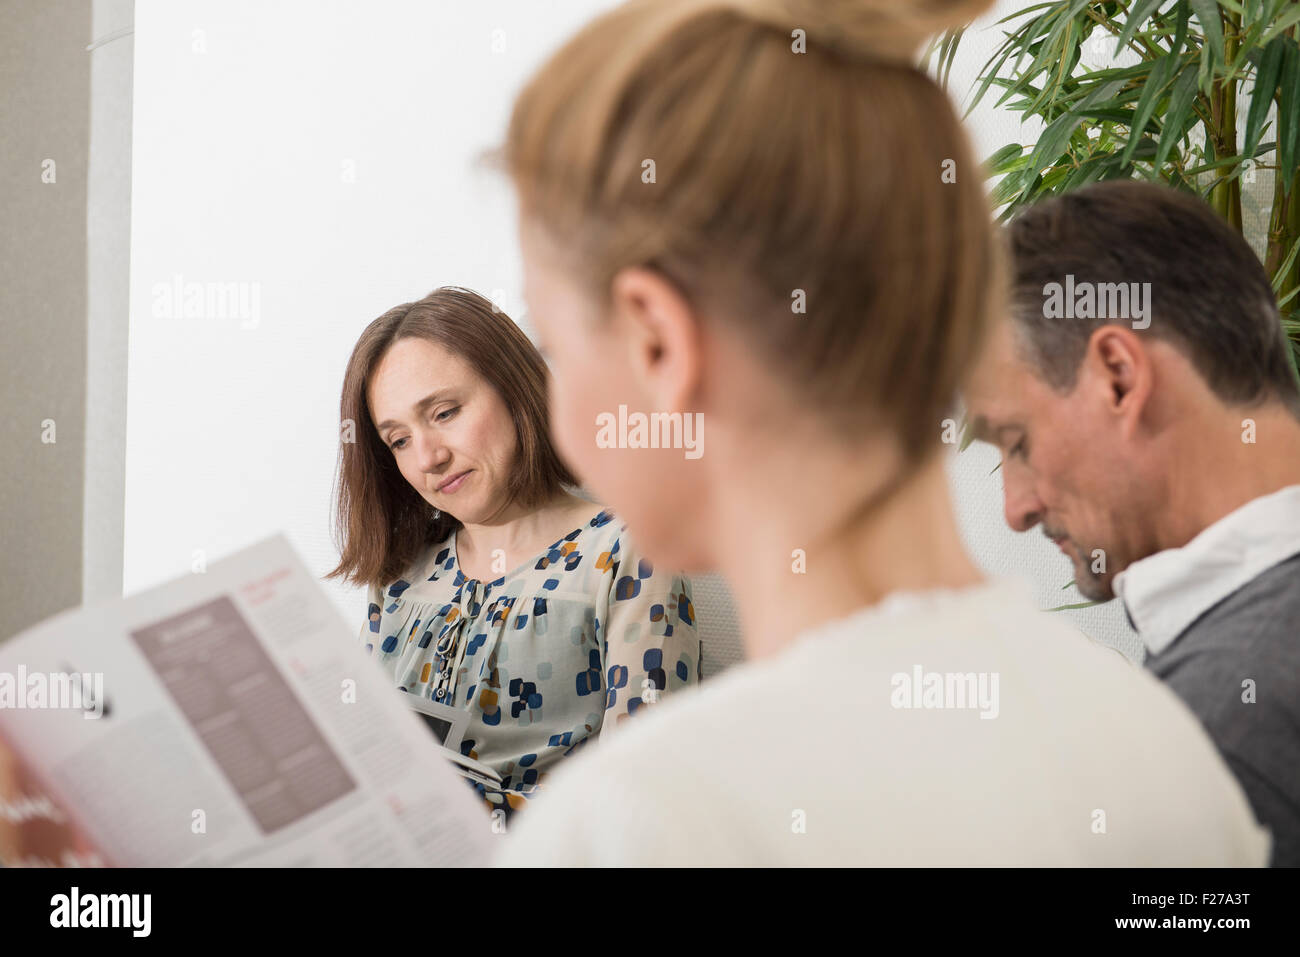 Three people sitting in waiting area of hospital, Munich, Bavaria, Germany - Stock Image